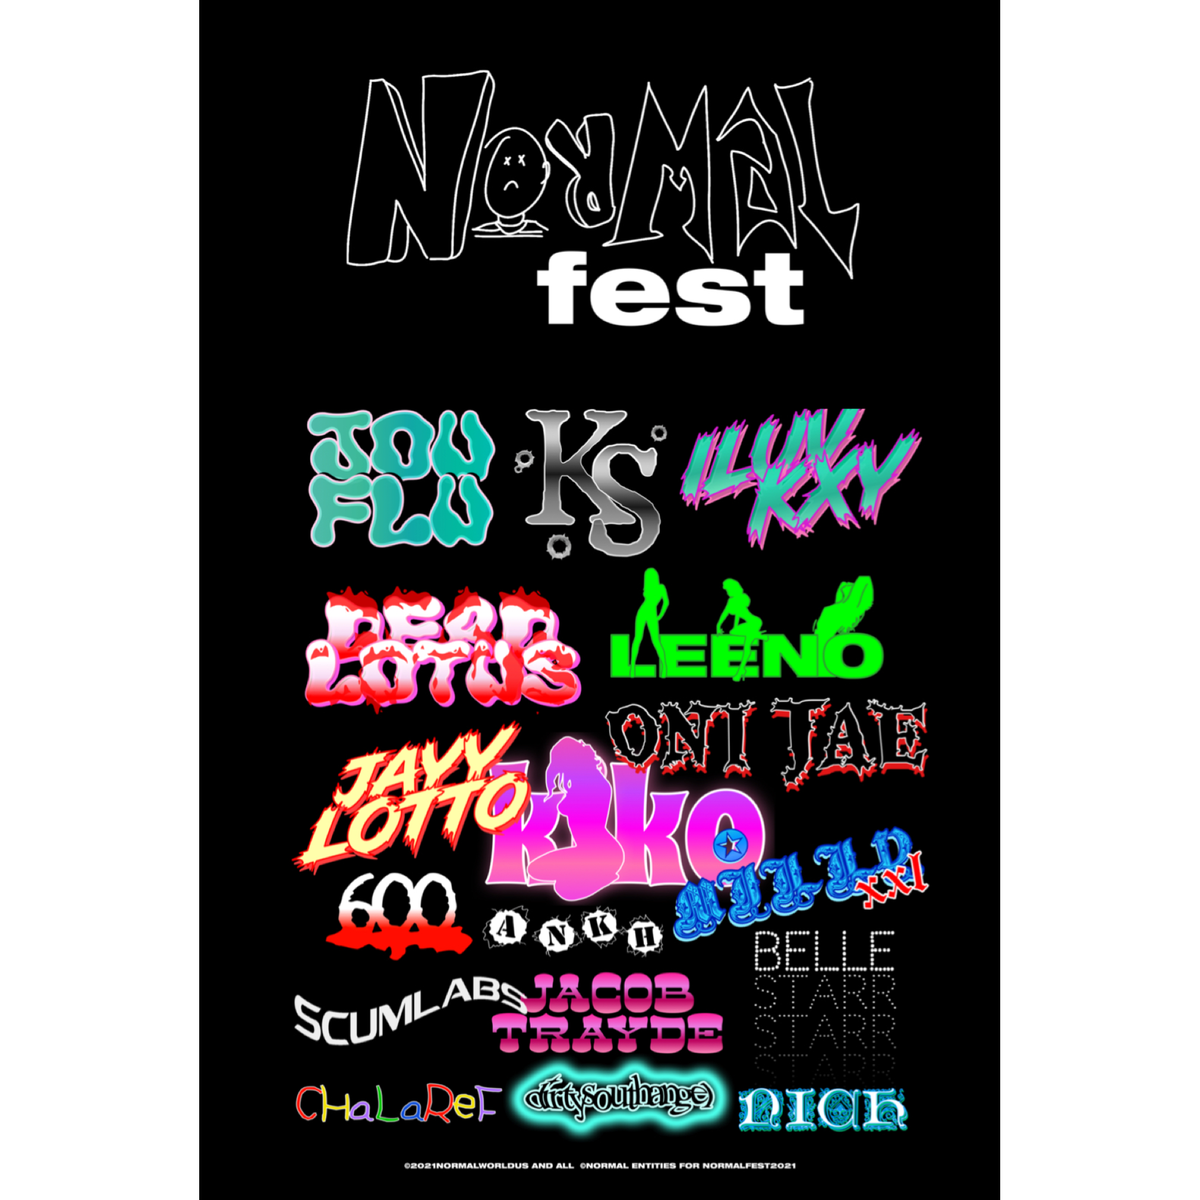 Image of NORMALFEST 2 POSTER